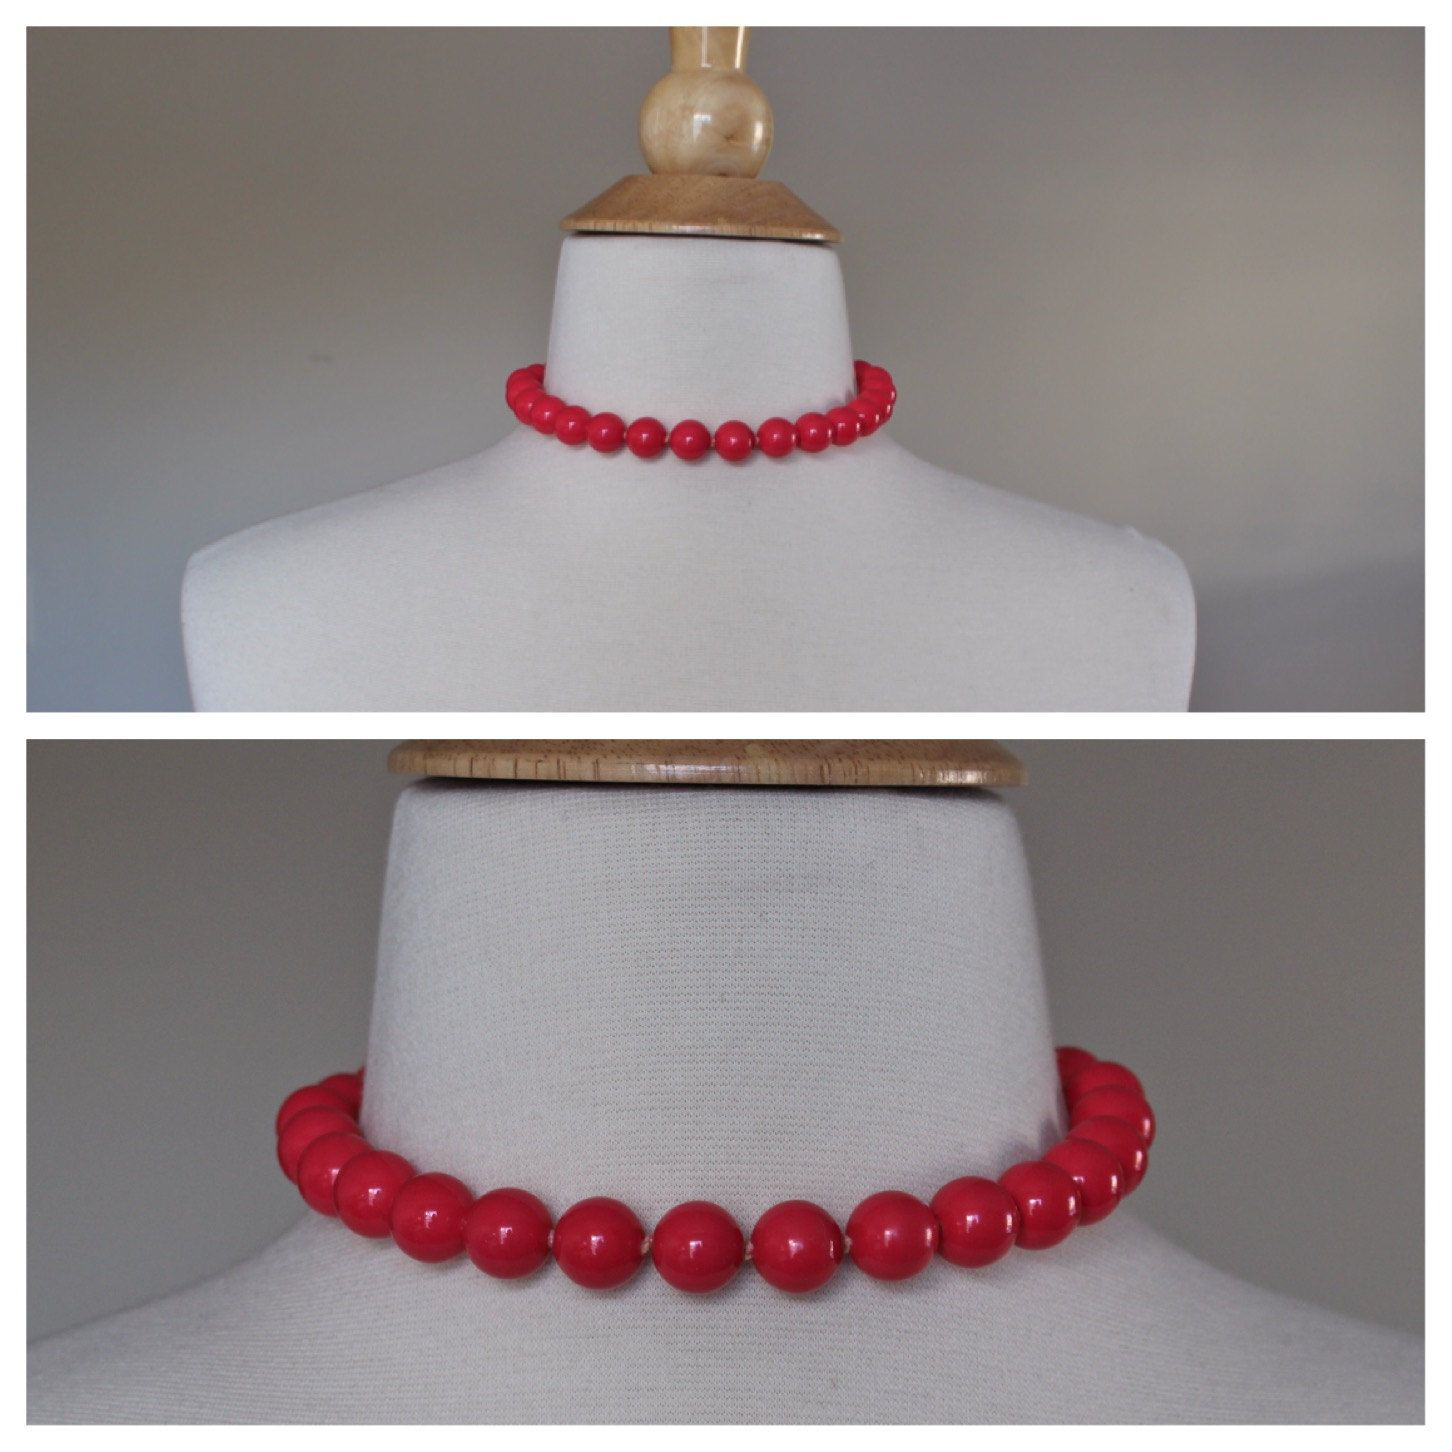 Vintage 1940's Retro Pinup Rockabilly Heavy Dark Pink Large Galalith Beaded Necklace Choker Hook Clasp Marked Japan by SimplePratiqueElegan on Etsy